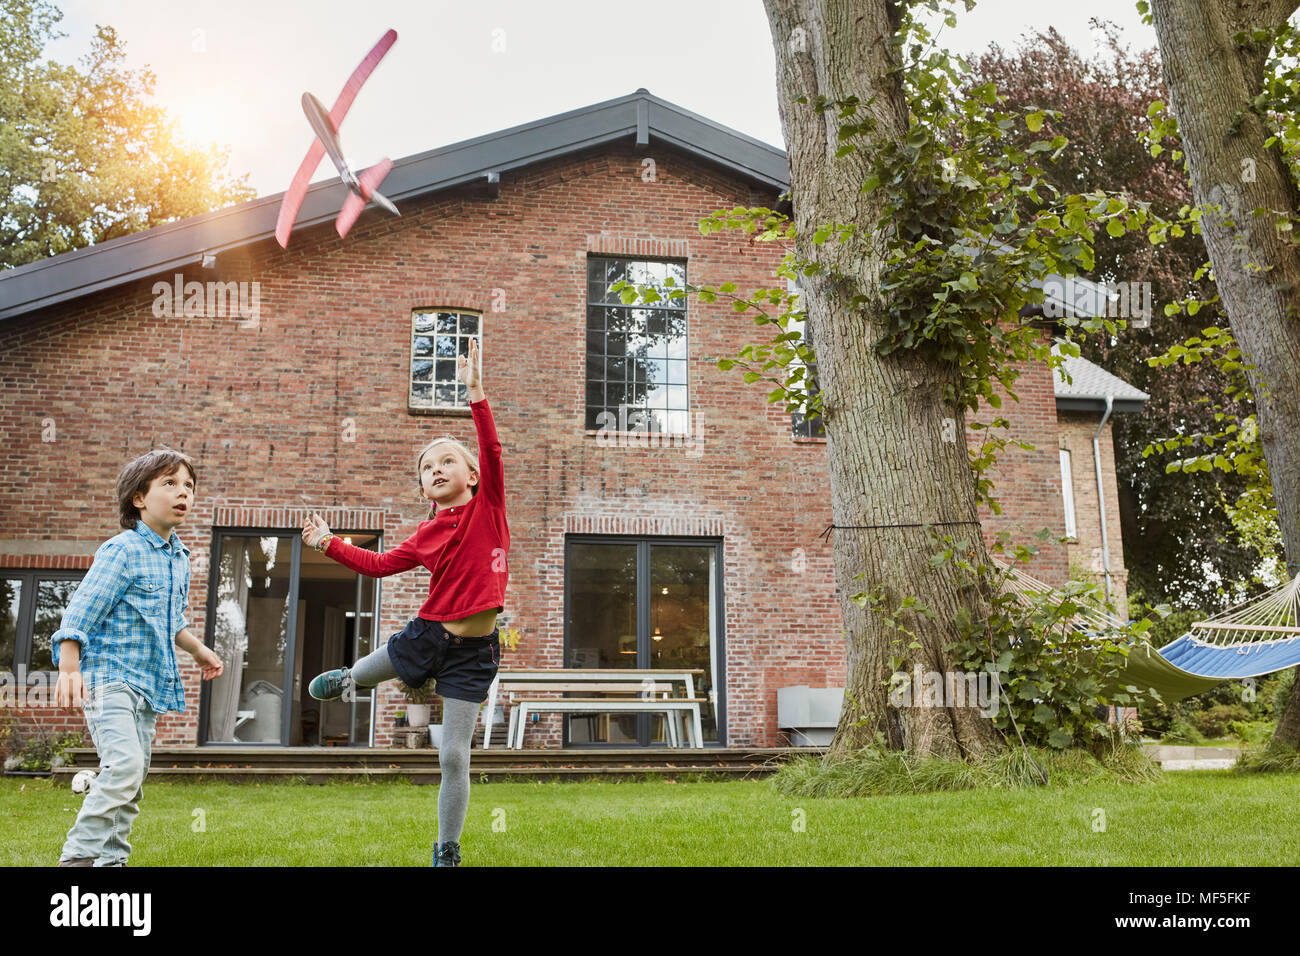 Two children playing with toy airplane in garden of their home - Stock Image